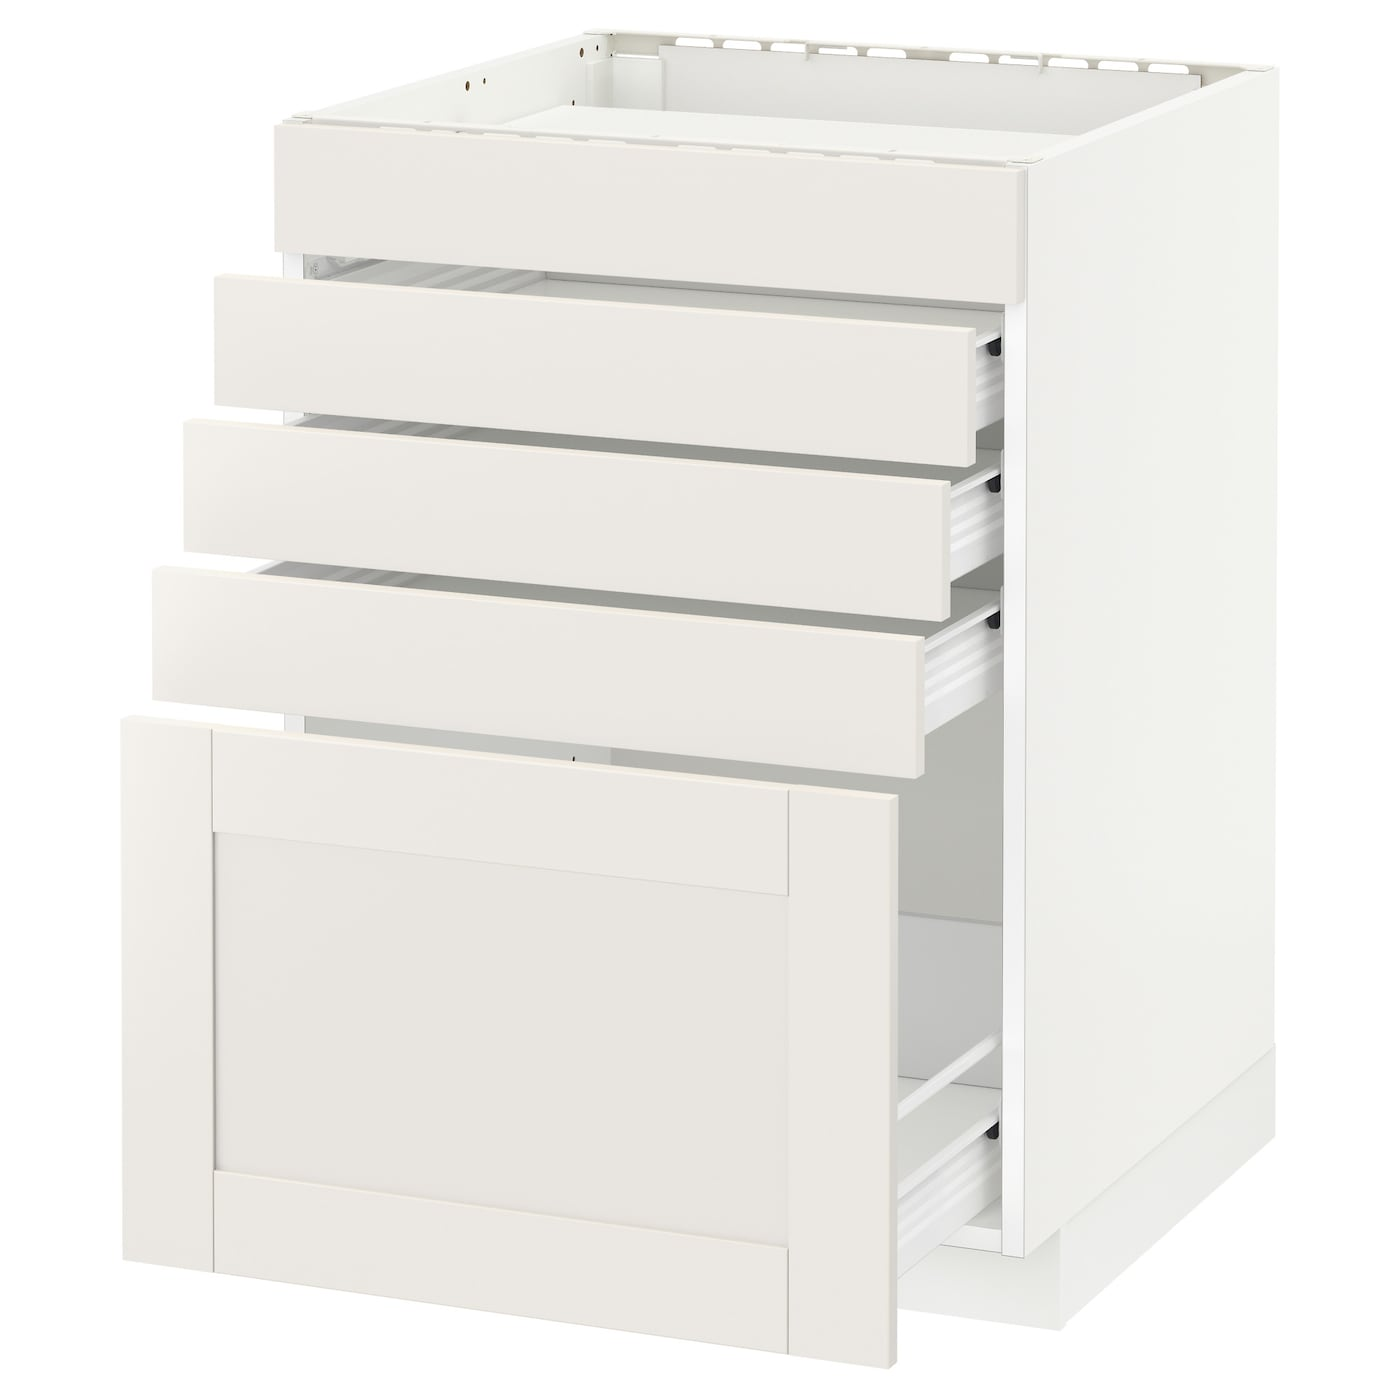 IKEA METOD/FÖRVARA base cab f hob/5 fronts/4 drawers Sturdy frame construction, 18 mm thick.